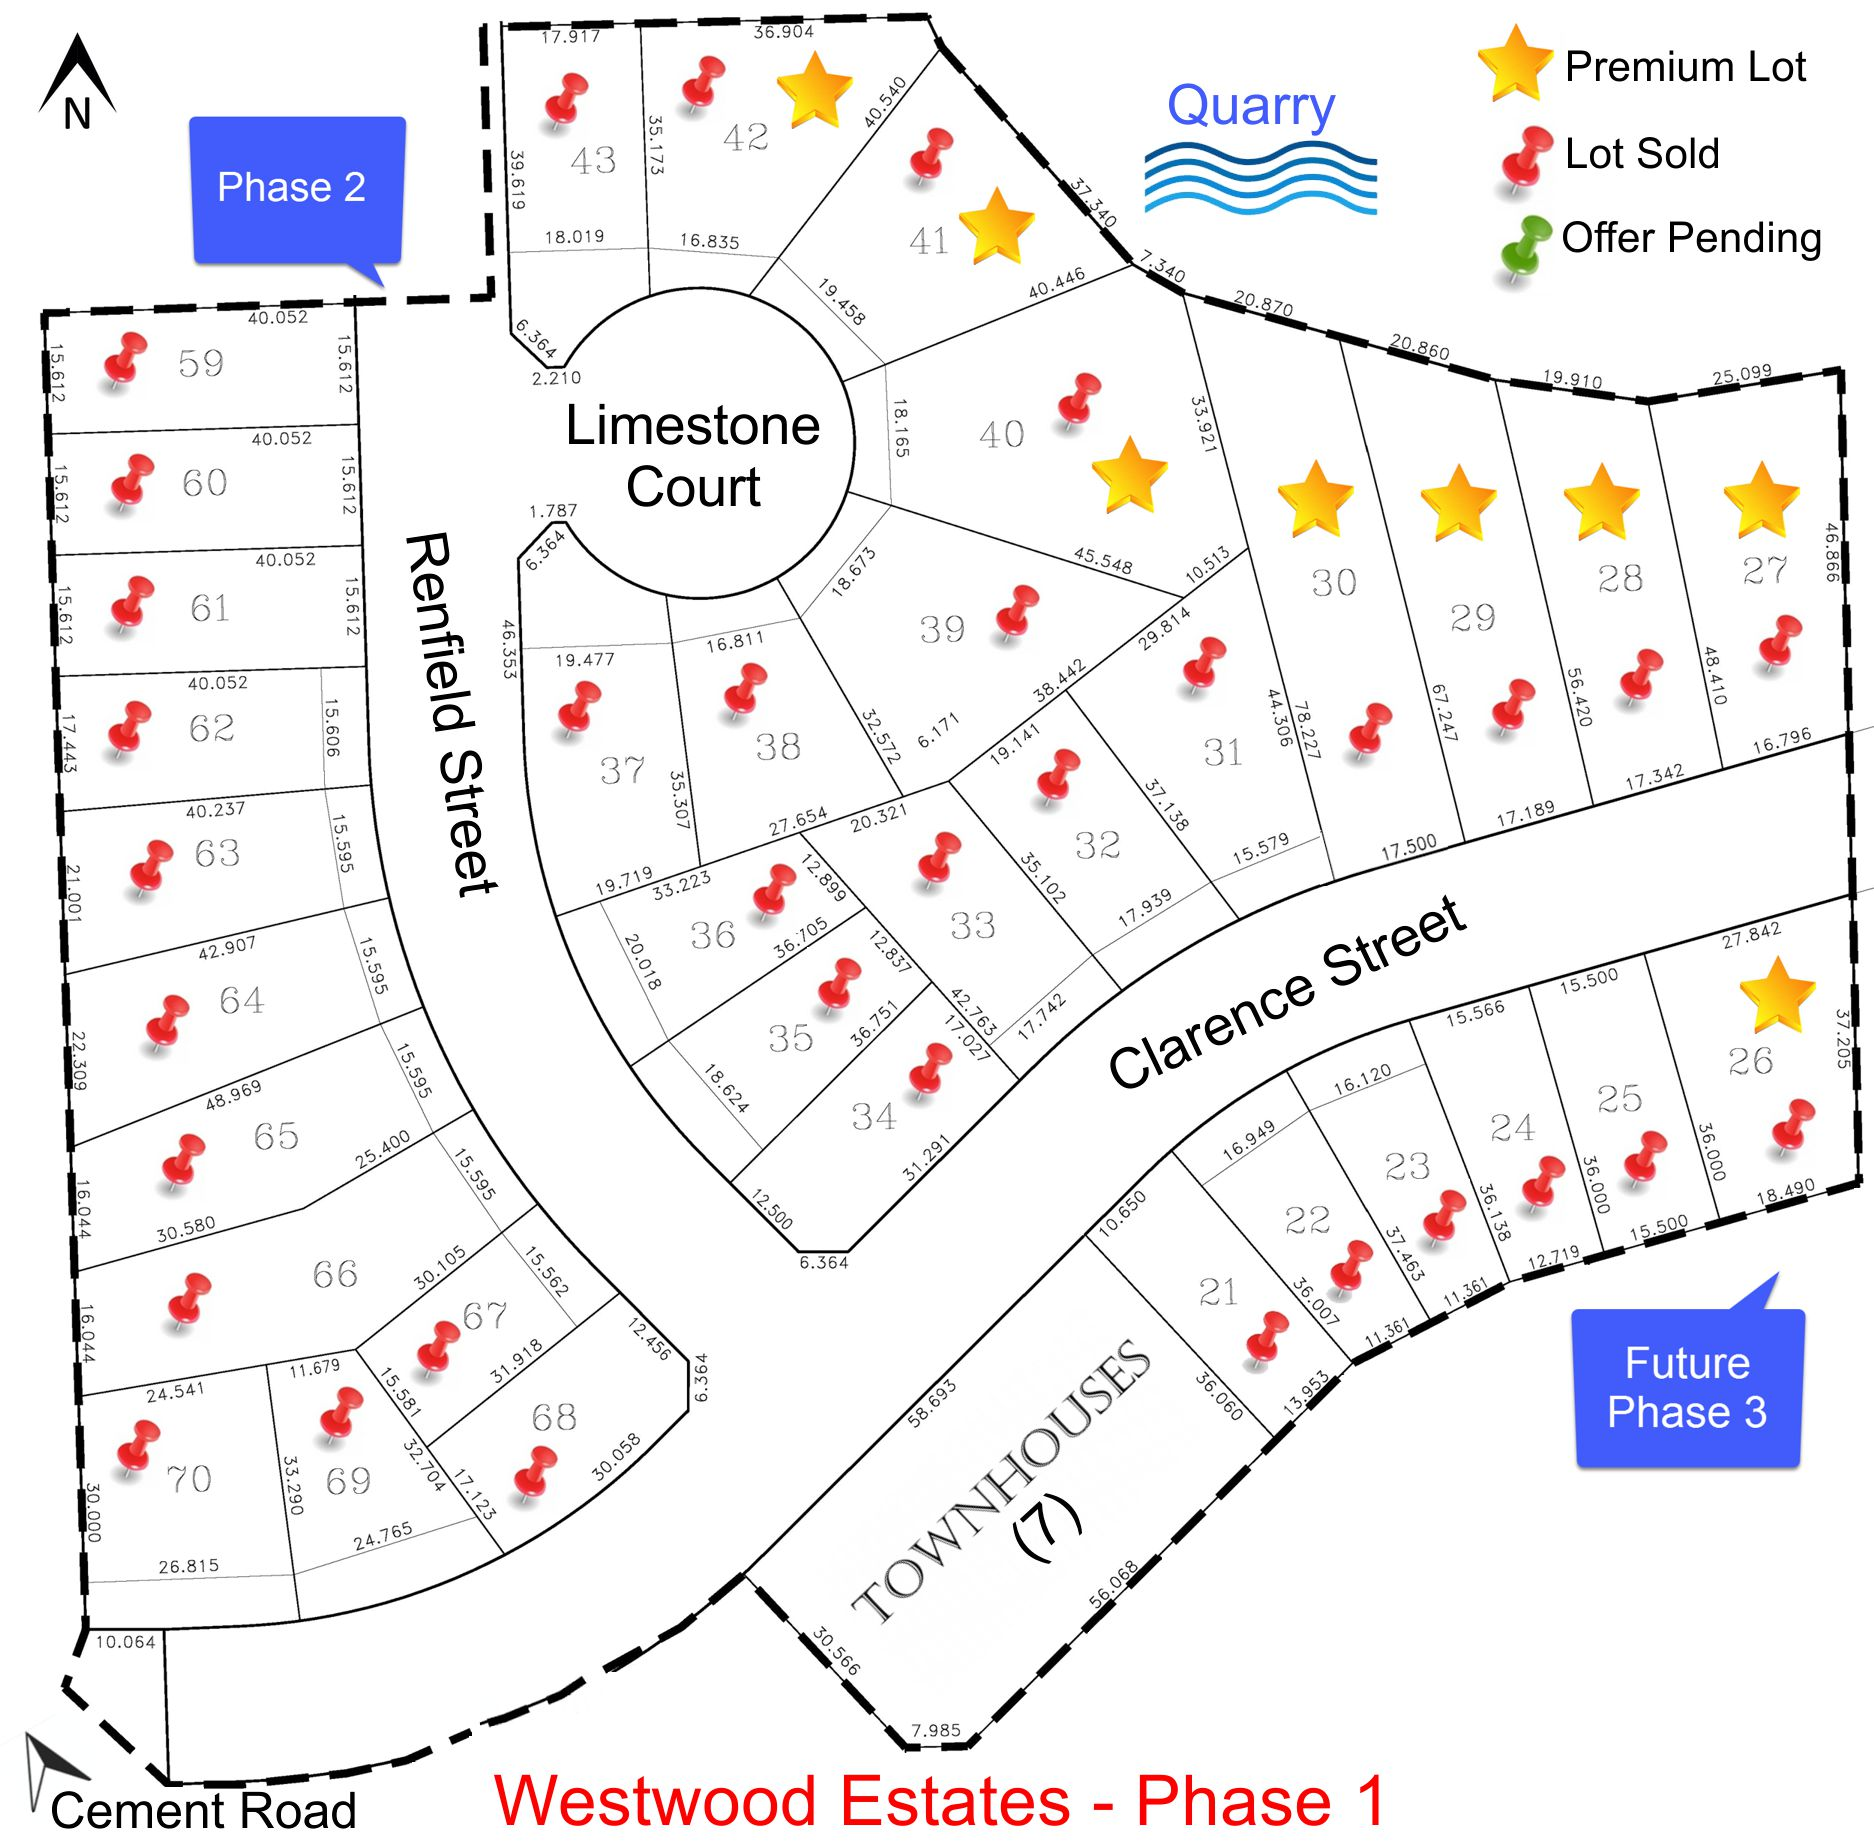 Westwood Estates Phase 1,land, lots for sale